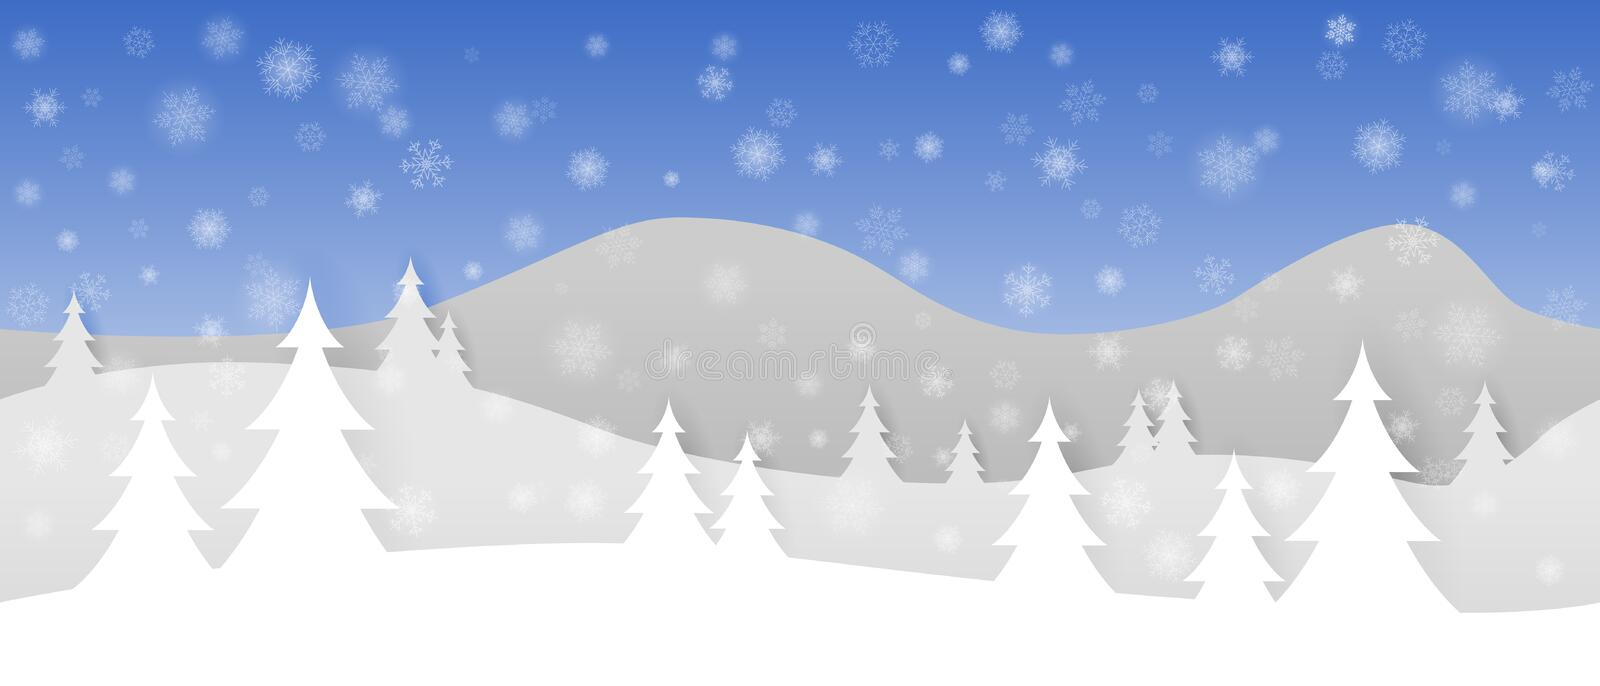 Simple seamless paper cut winter vector landscape with layered mountains, trees and falling snowflakes on blue background.  royalty free illustration